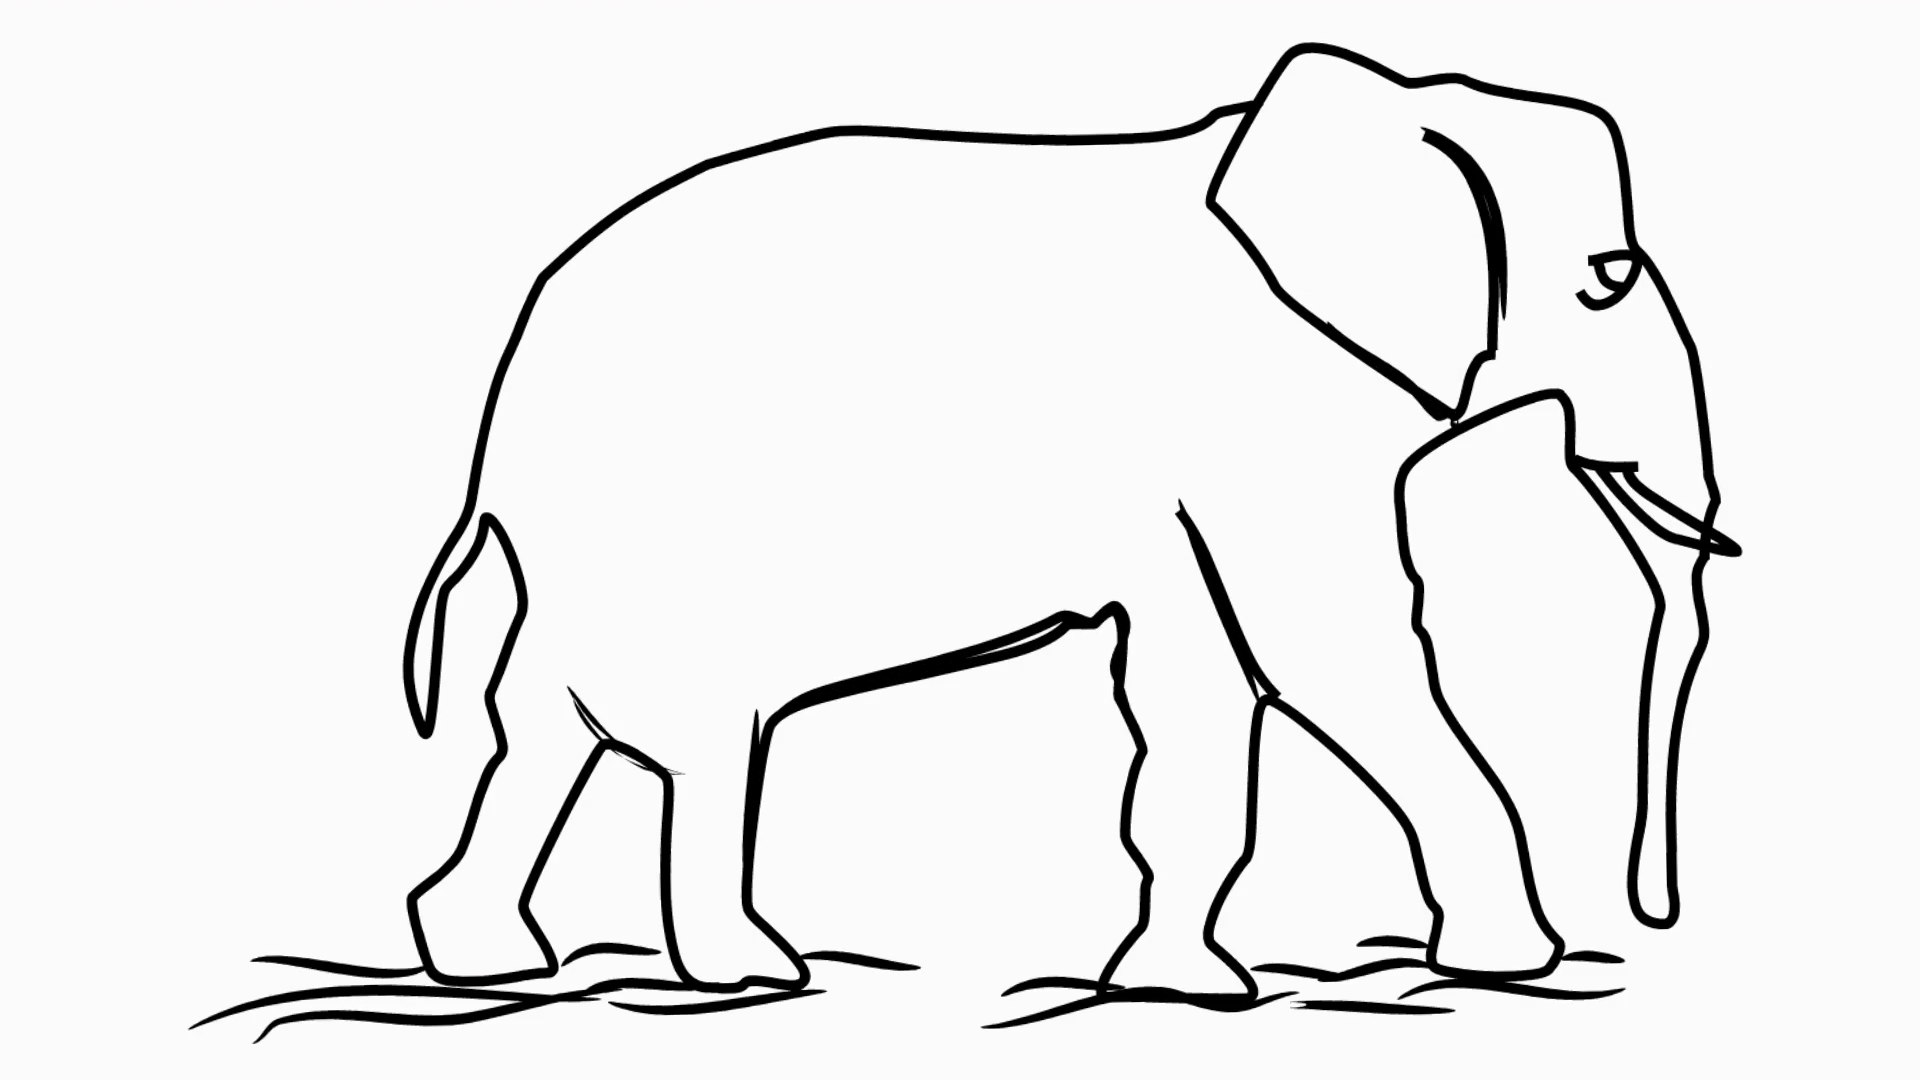 Elephant Line Drawing Png : Think of this elephant as a huge snowman this is the first drawing(that i have saved), of wrestler deonna purrazzo.